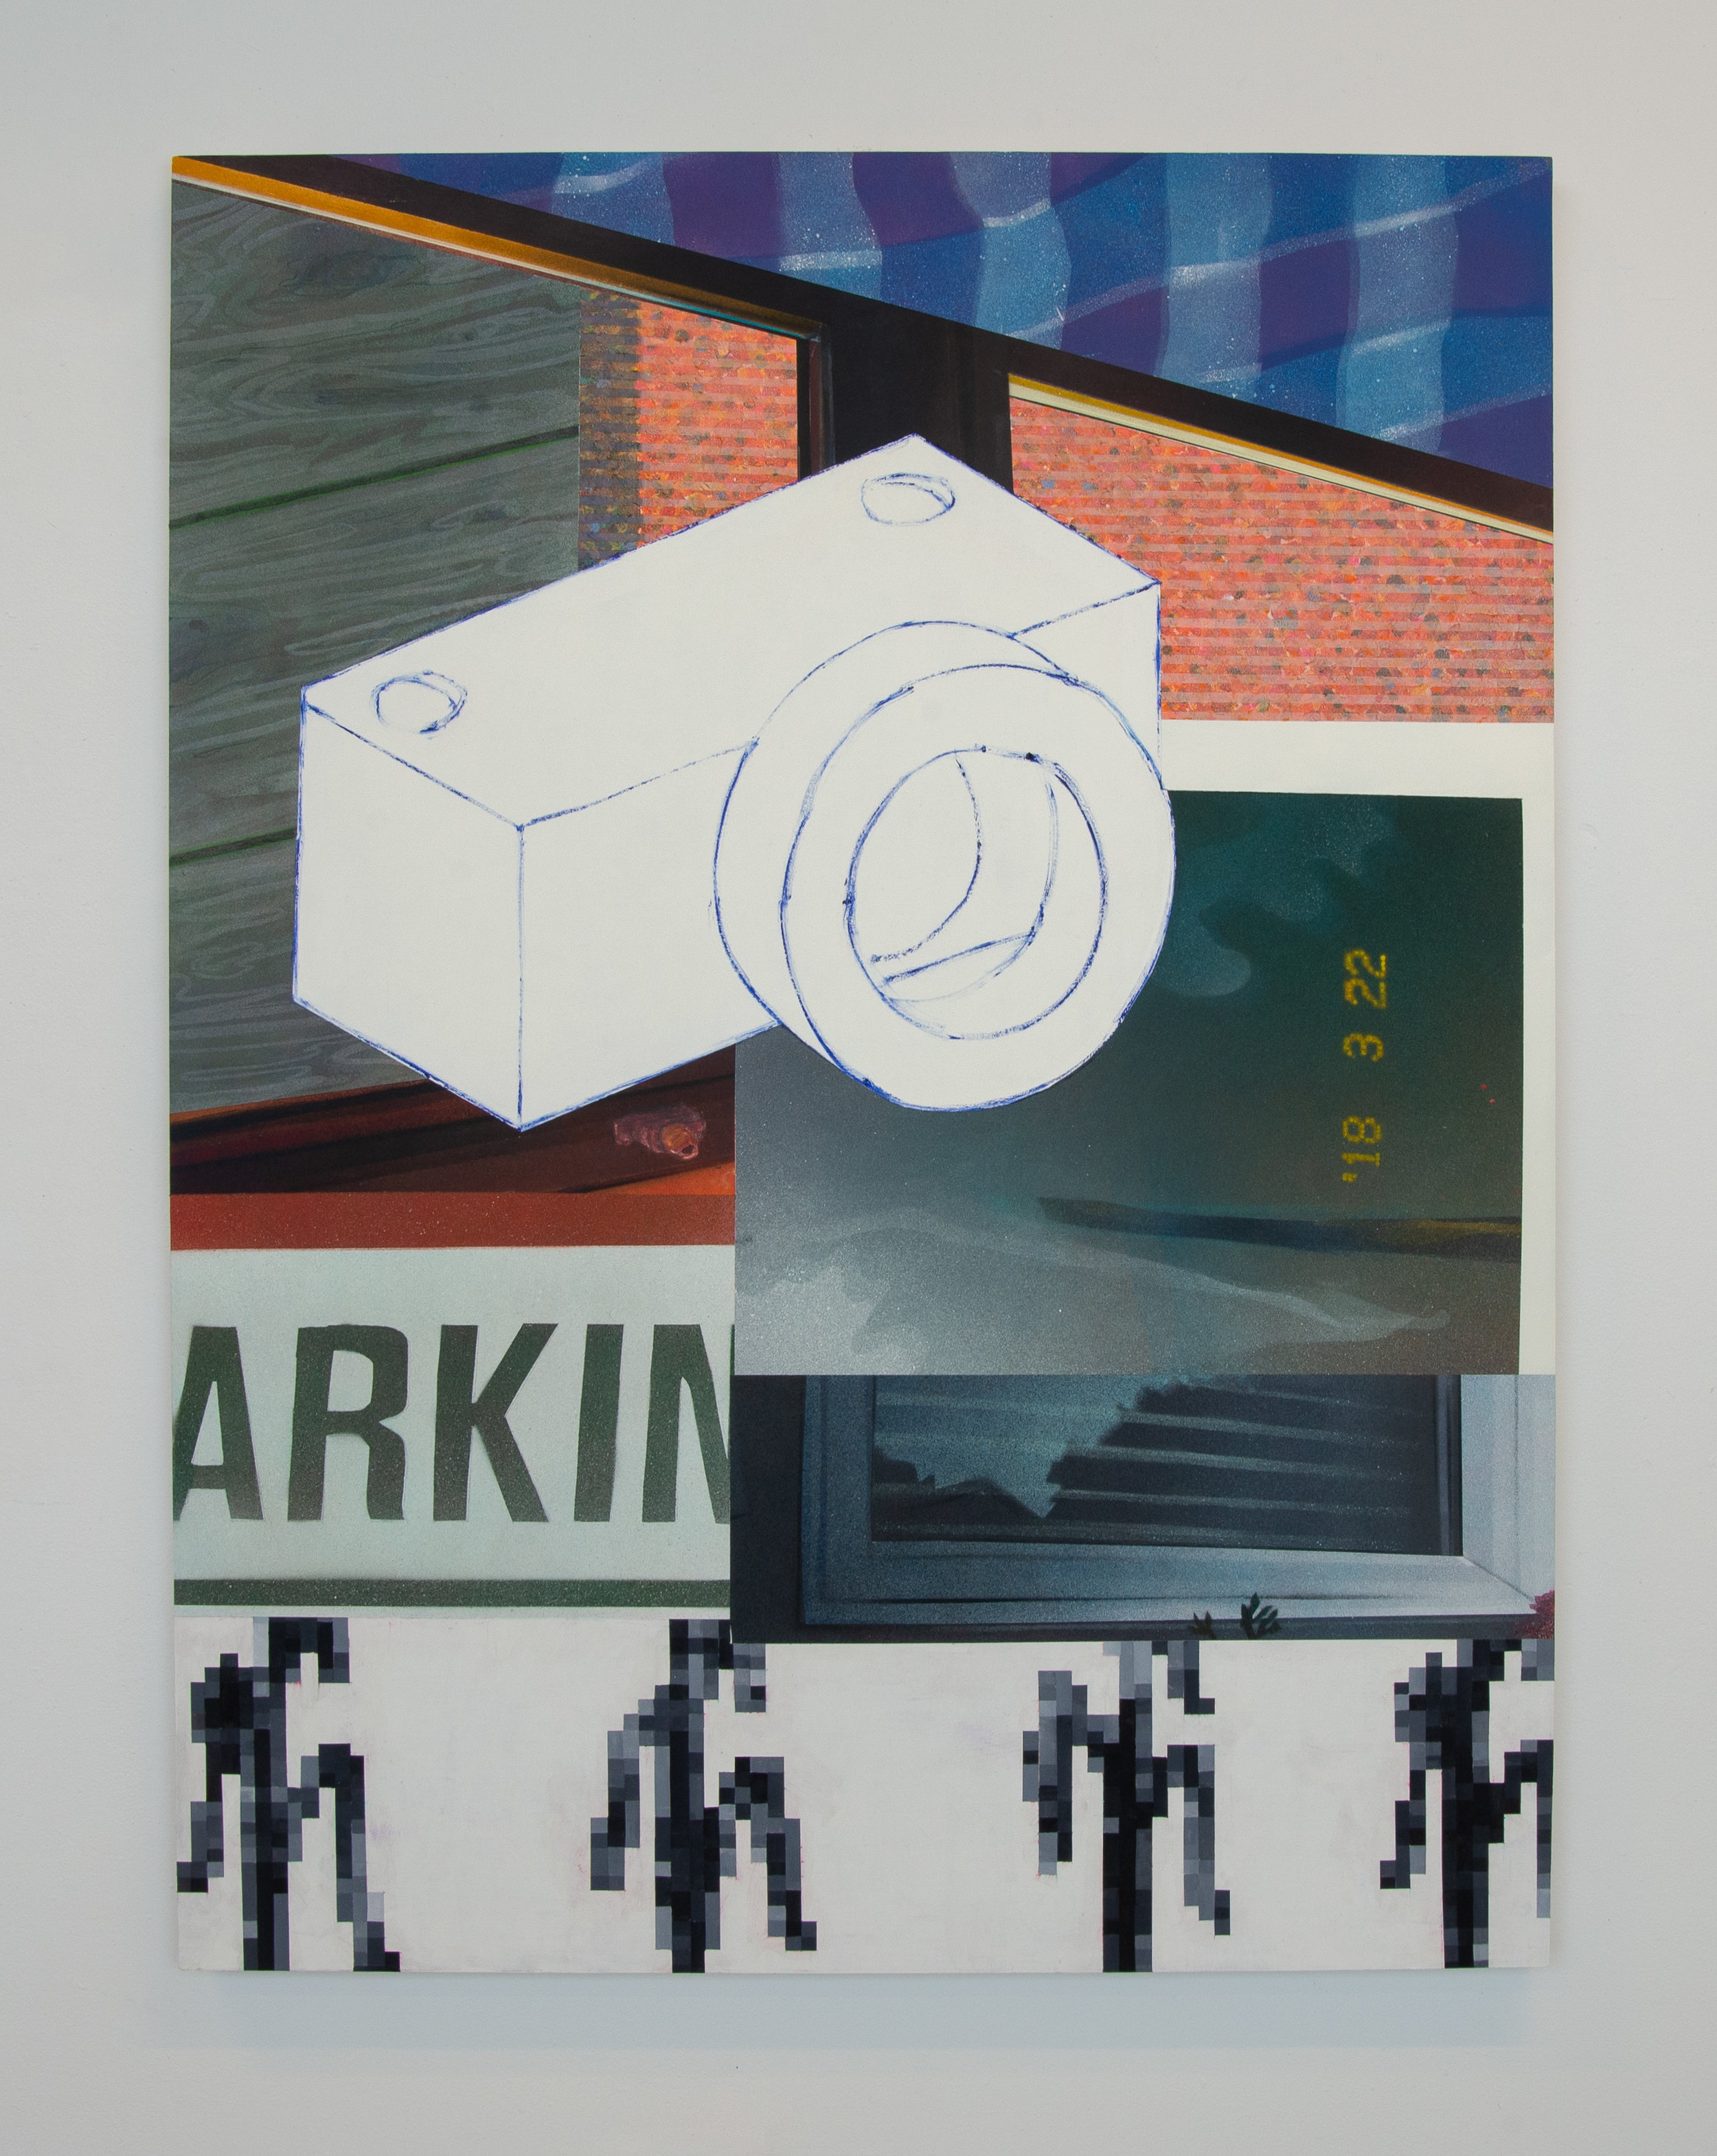 ARKIN  2018  spray paint and marker on wood panel  35.5in. x 47.5in. x 2in.